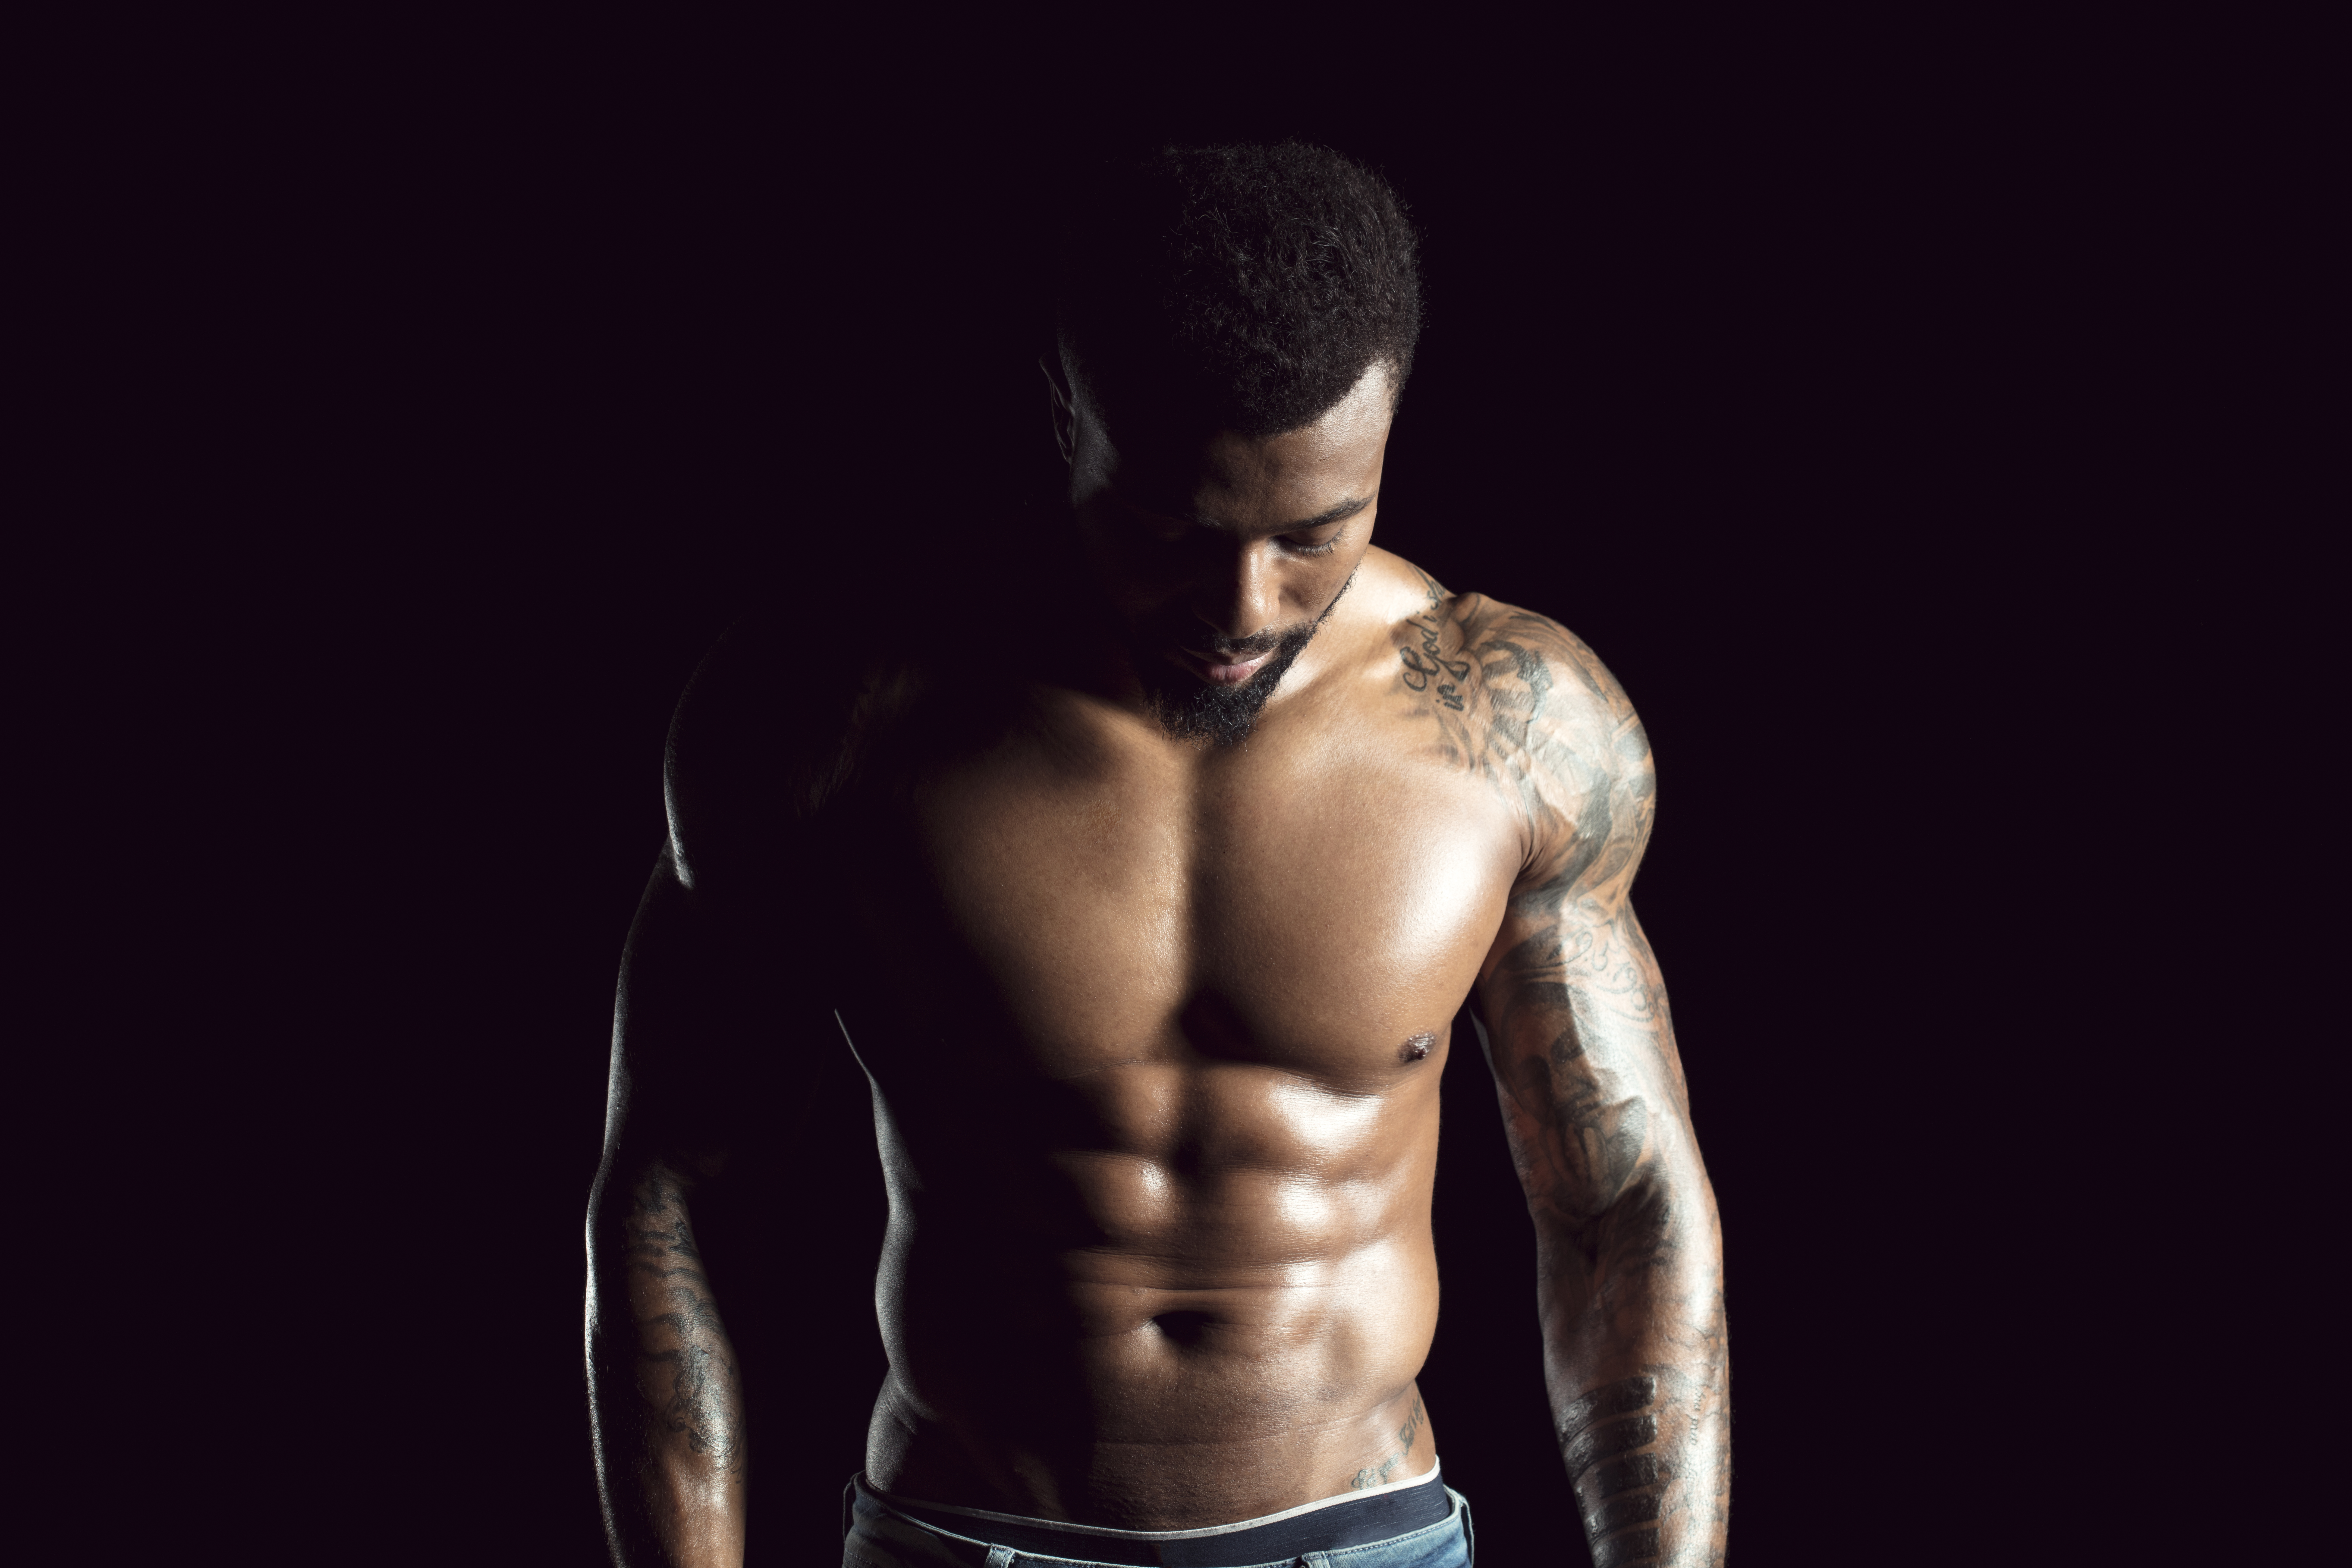 Tattooed physical athlete in front of black background